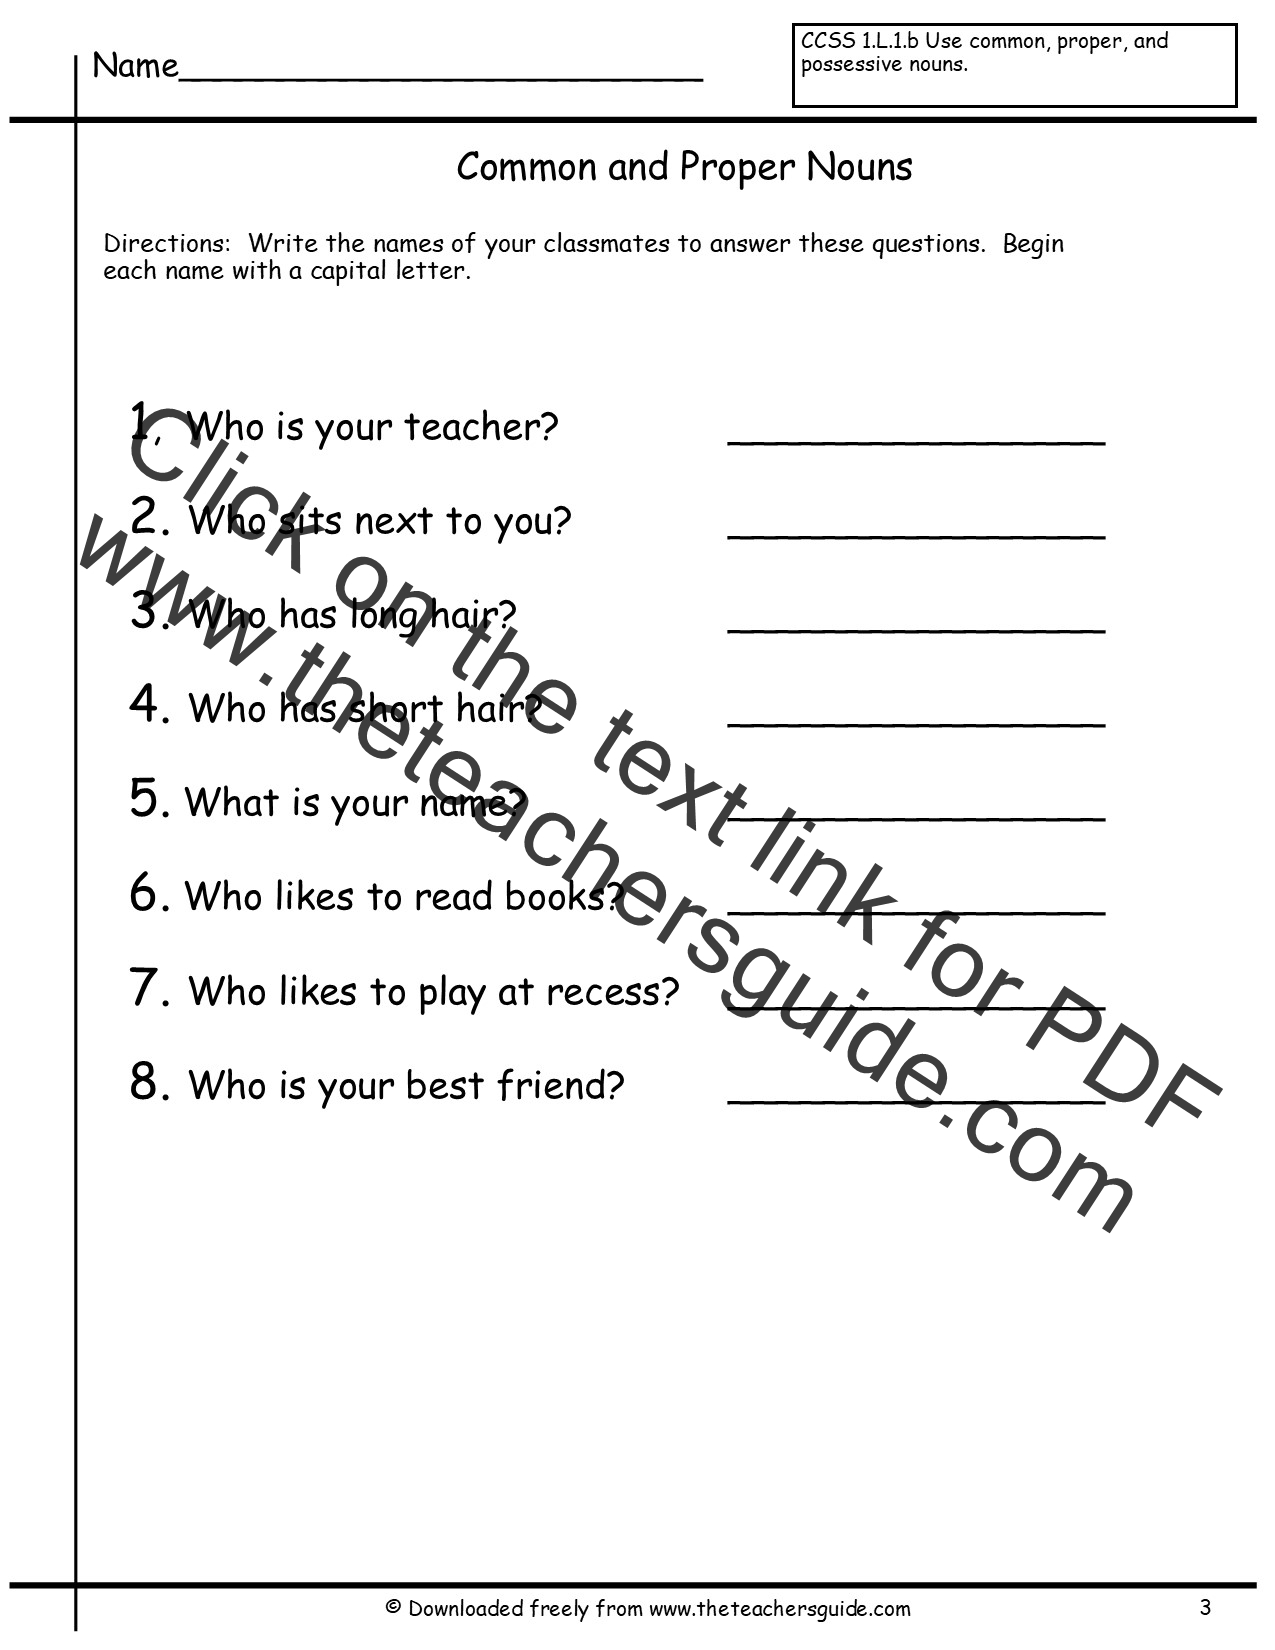 Free Collective Nouns Worksheet 2nd Grade